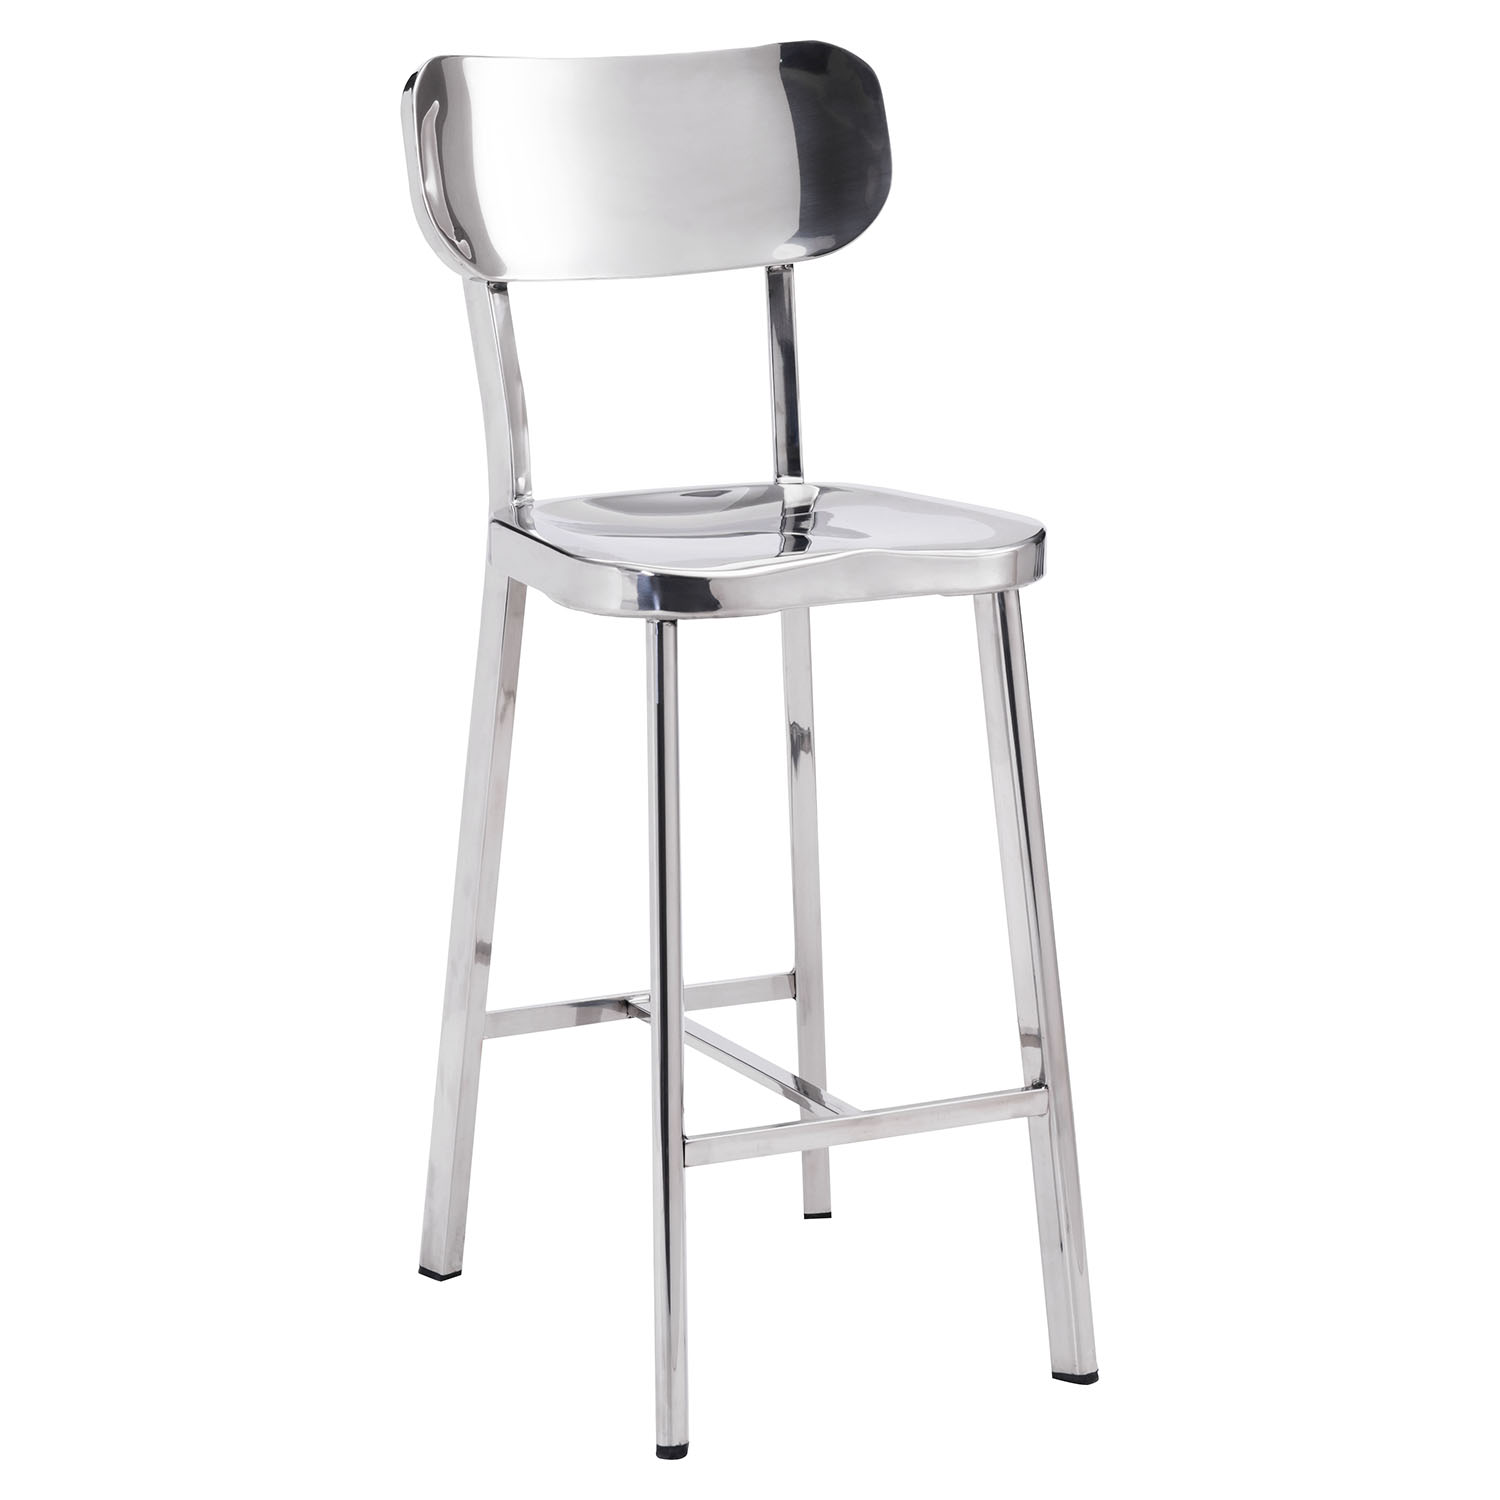 Winter Counter Chair - Stainless Steel - ZM-100302